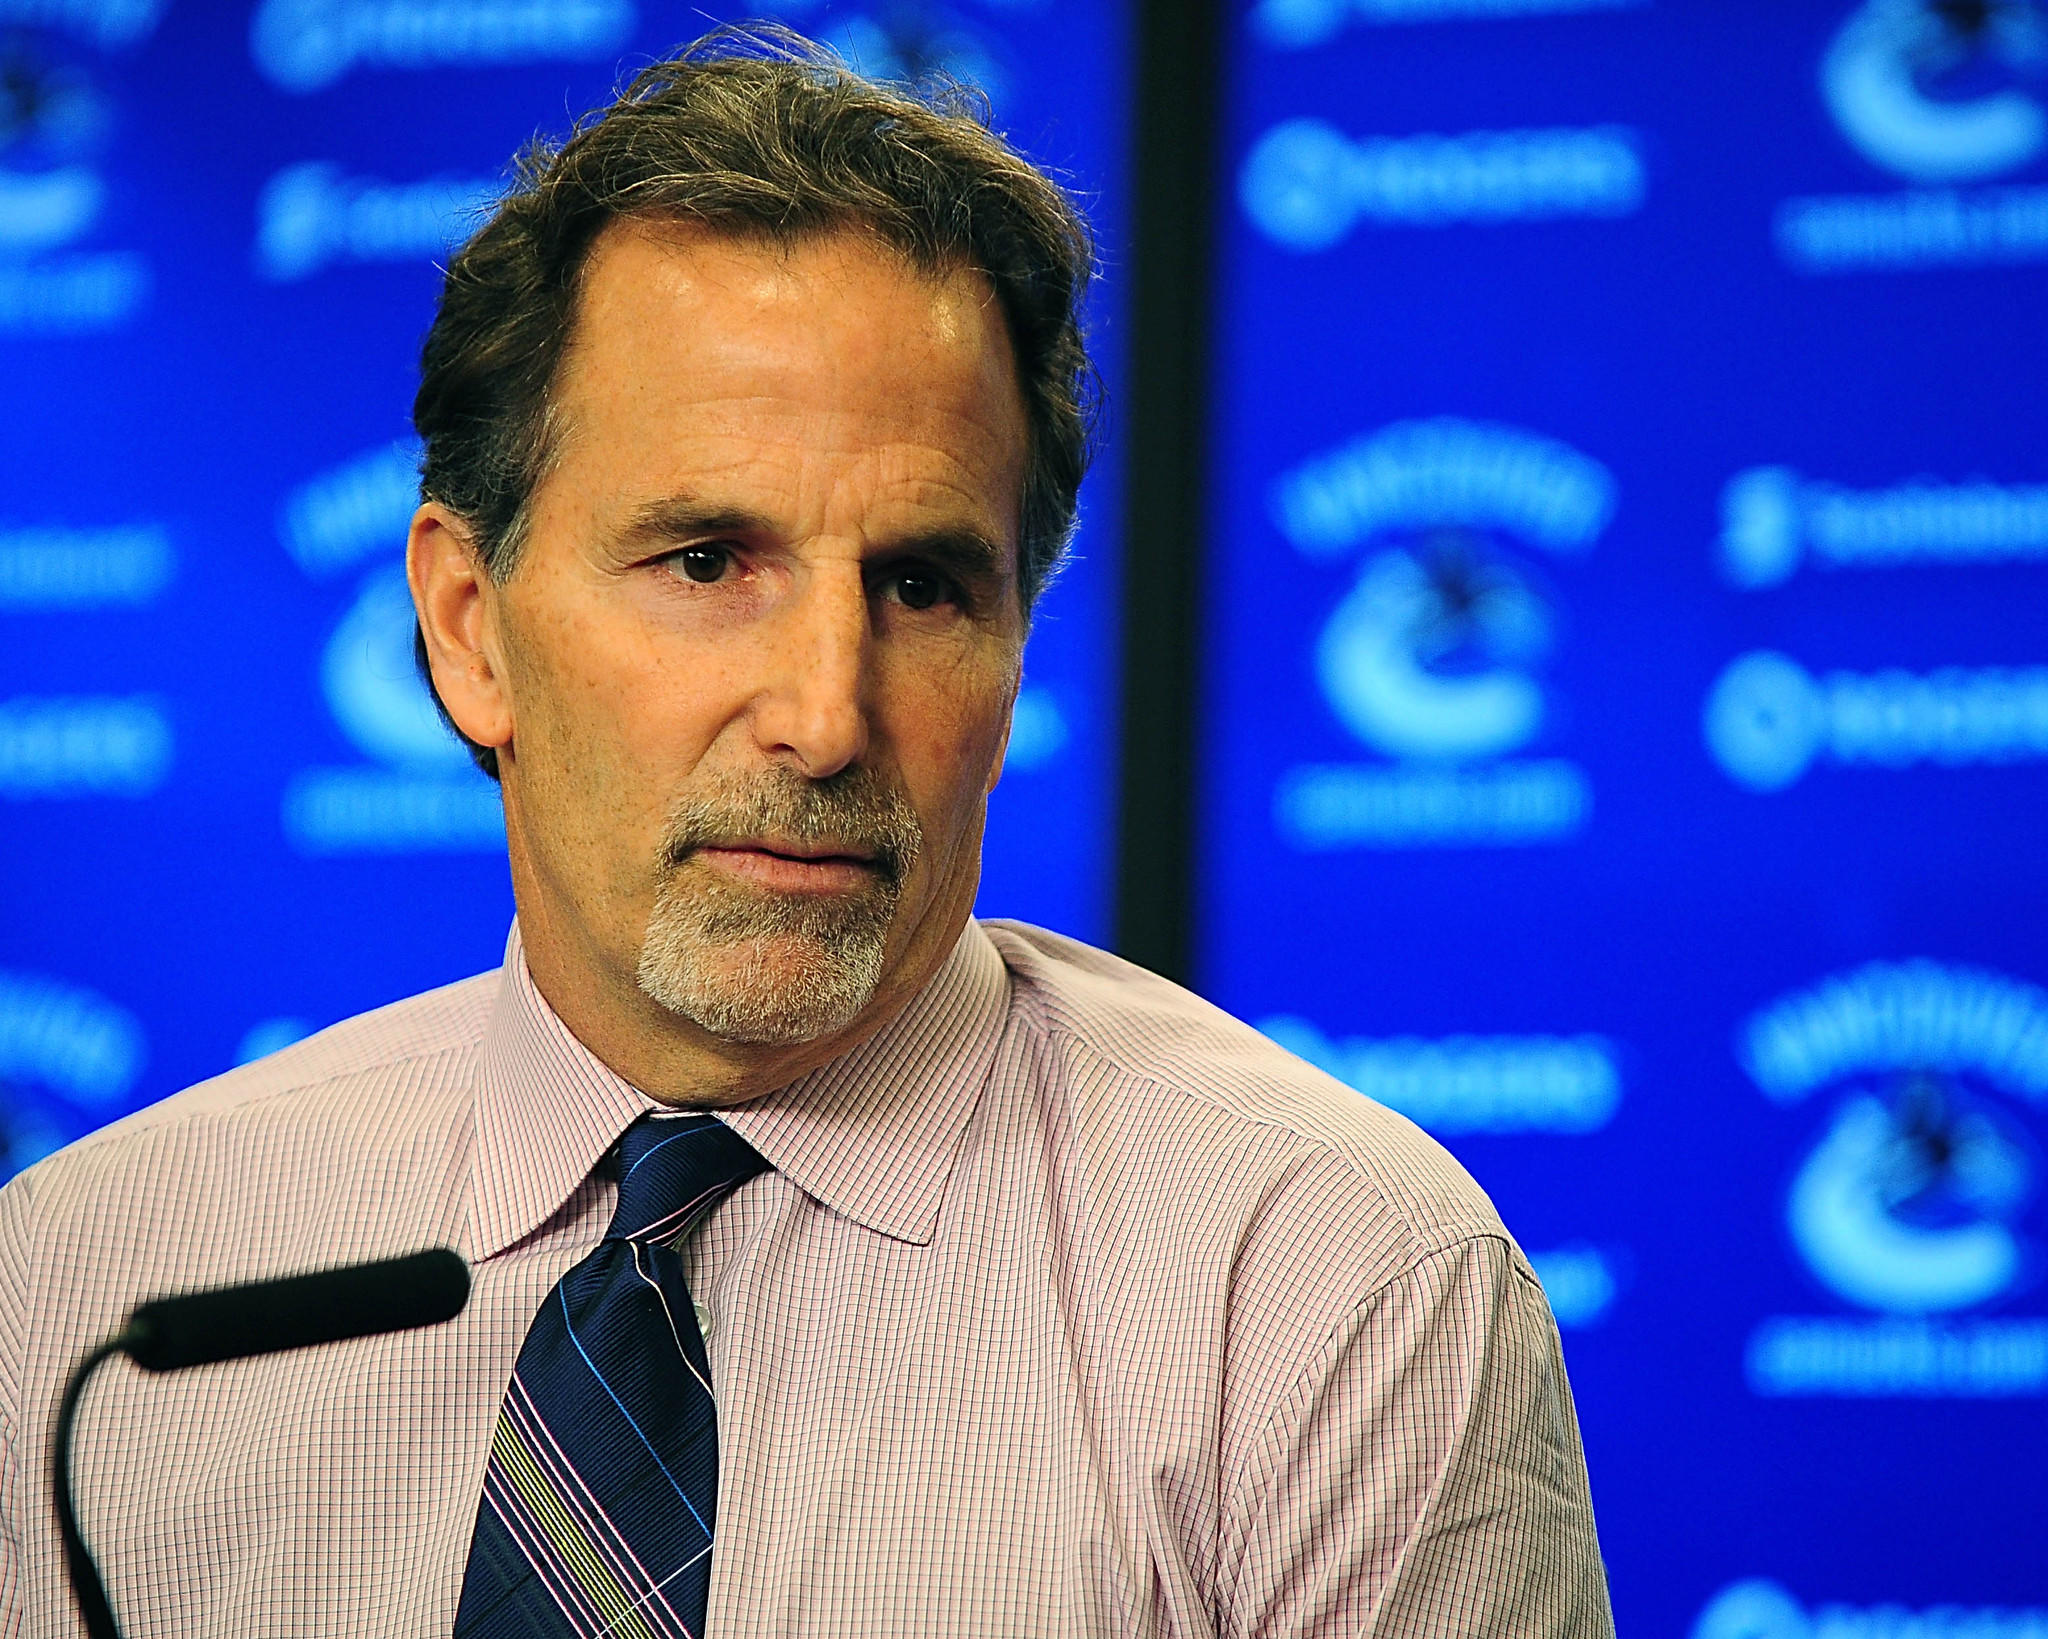 Canucks coach John Tortorella addresses the media after the game against the Calgary Flames at Rogers Arena.